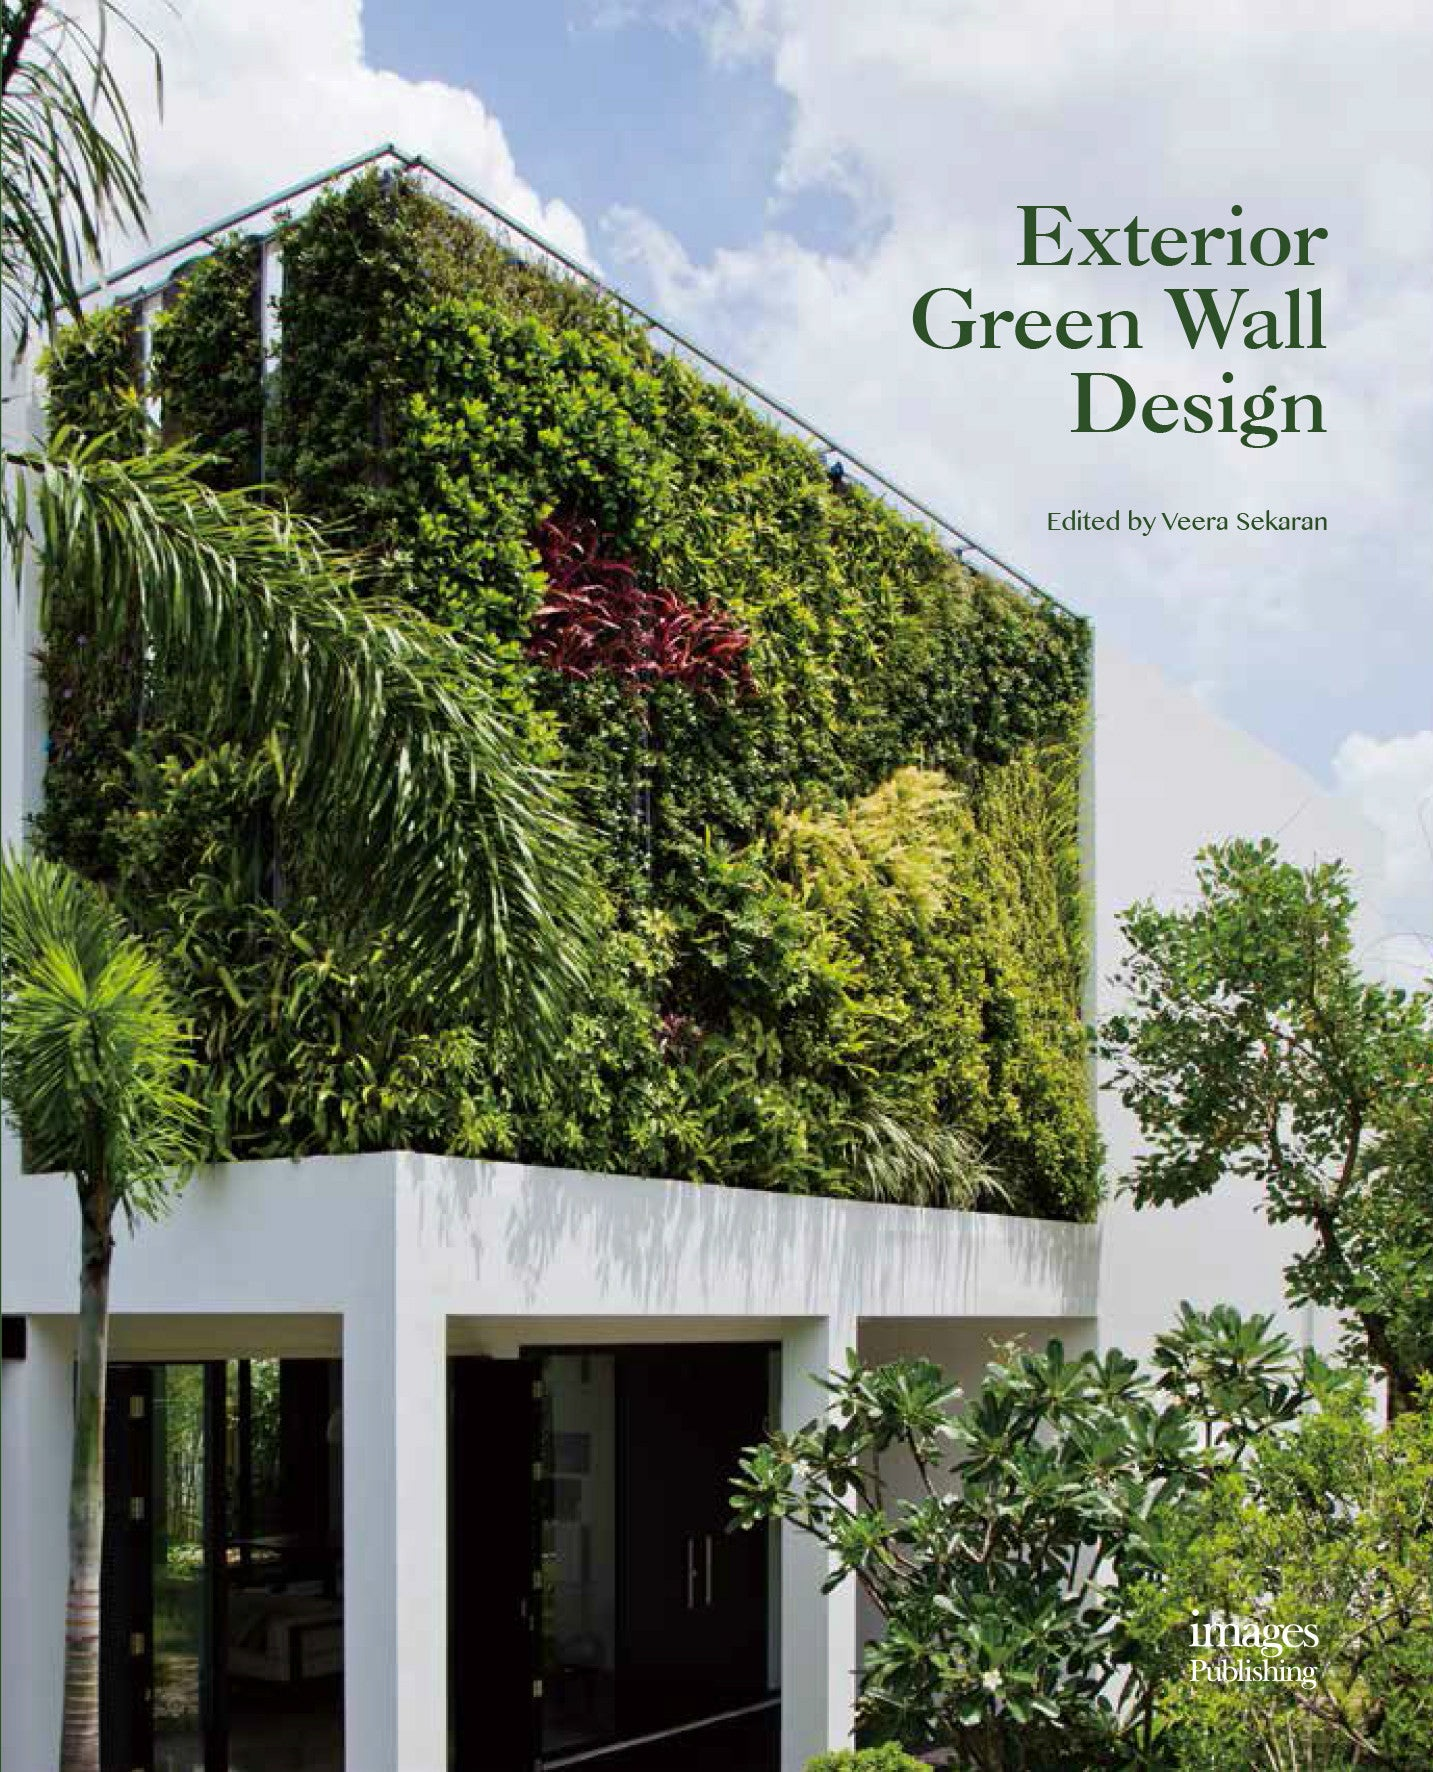 exterior green wall design architecture books sustainability - Exterior Wall Designs